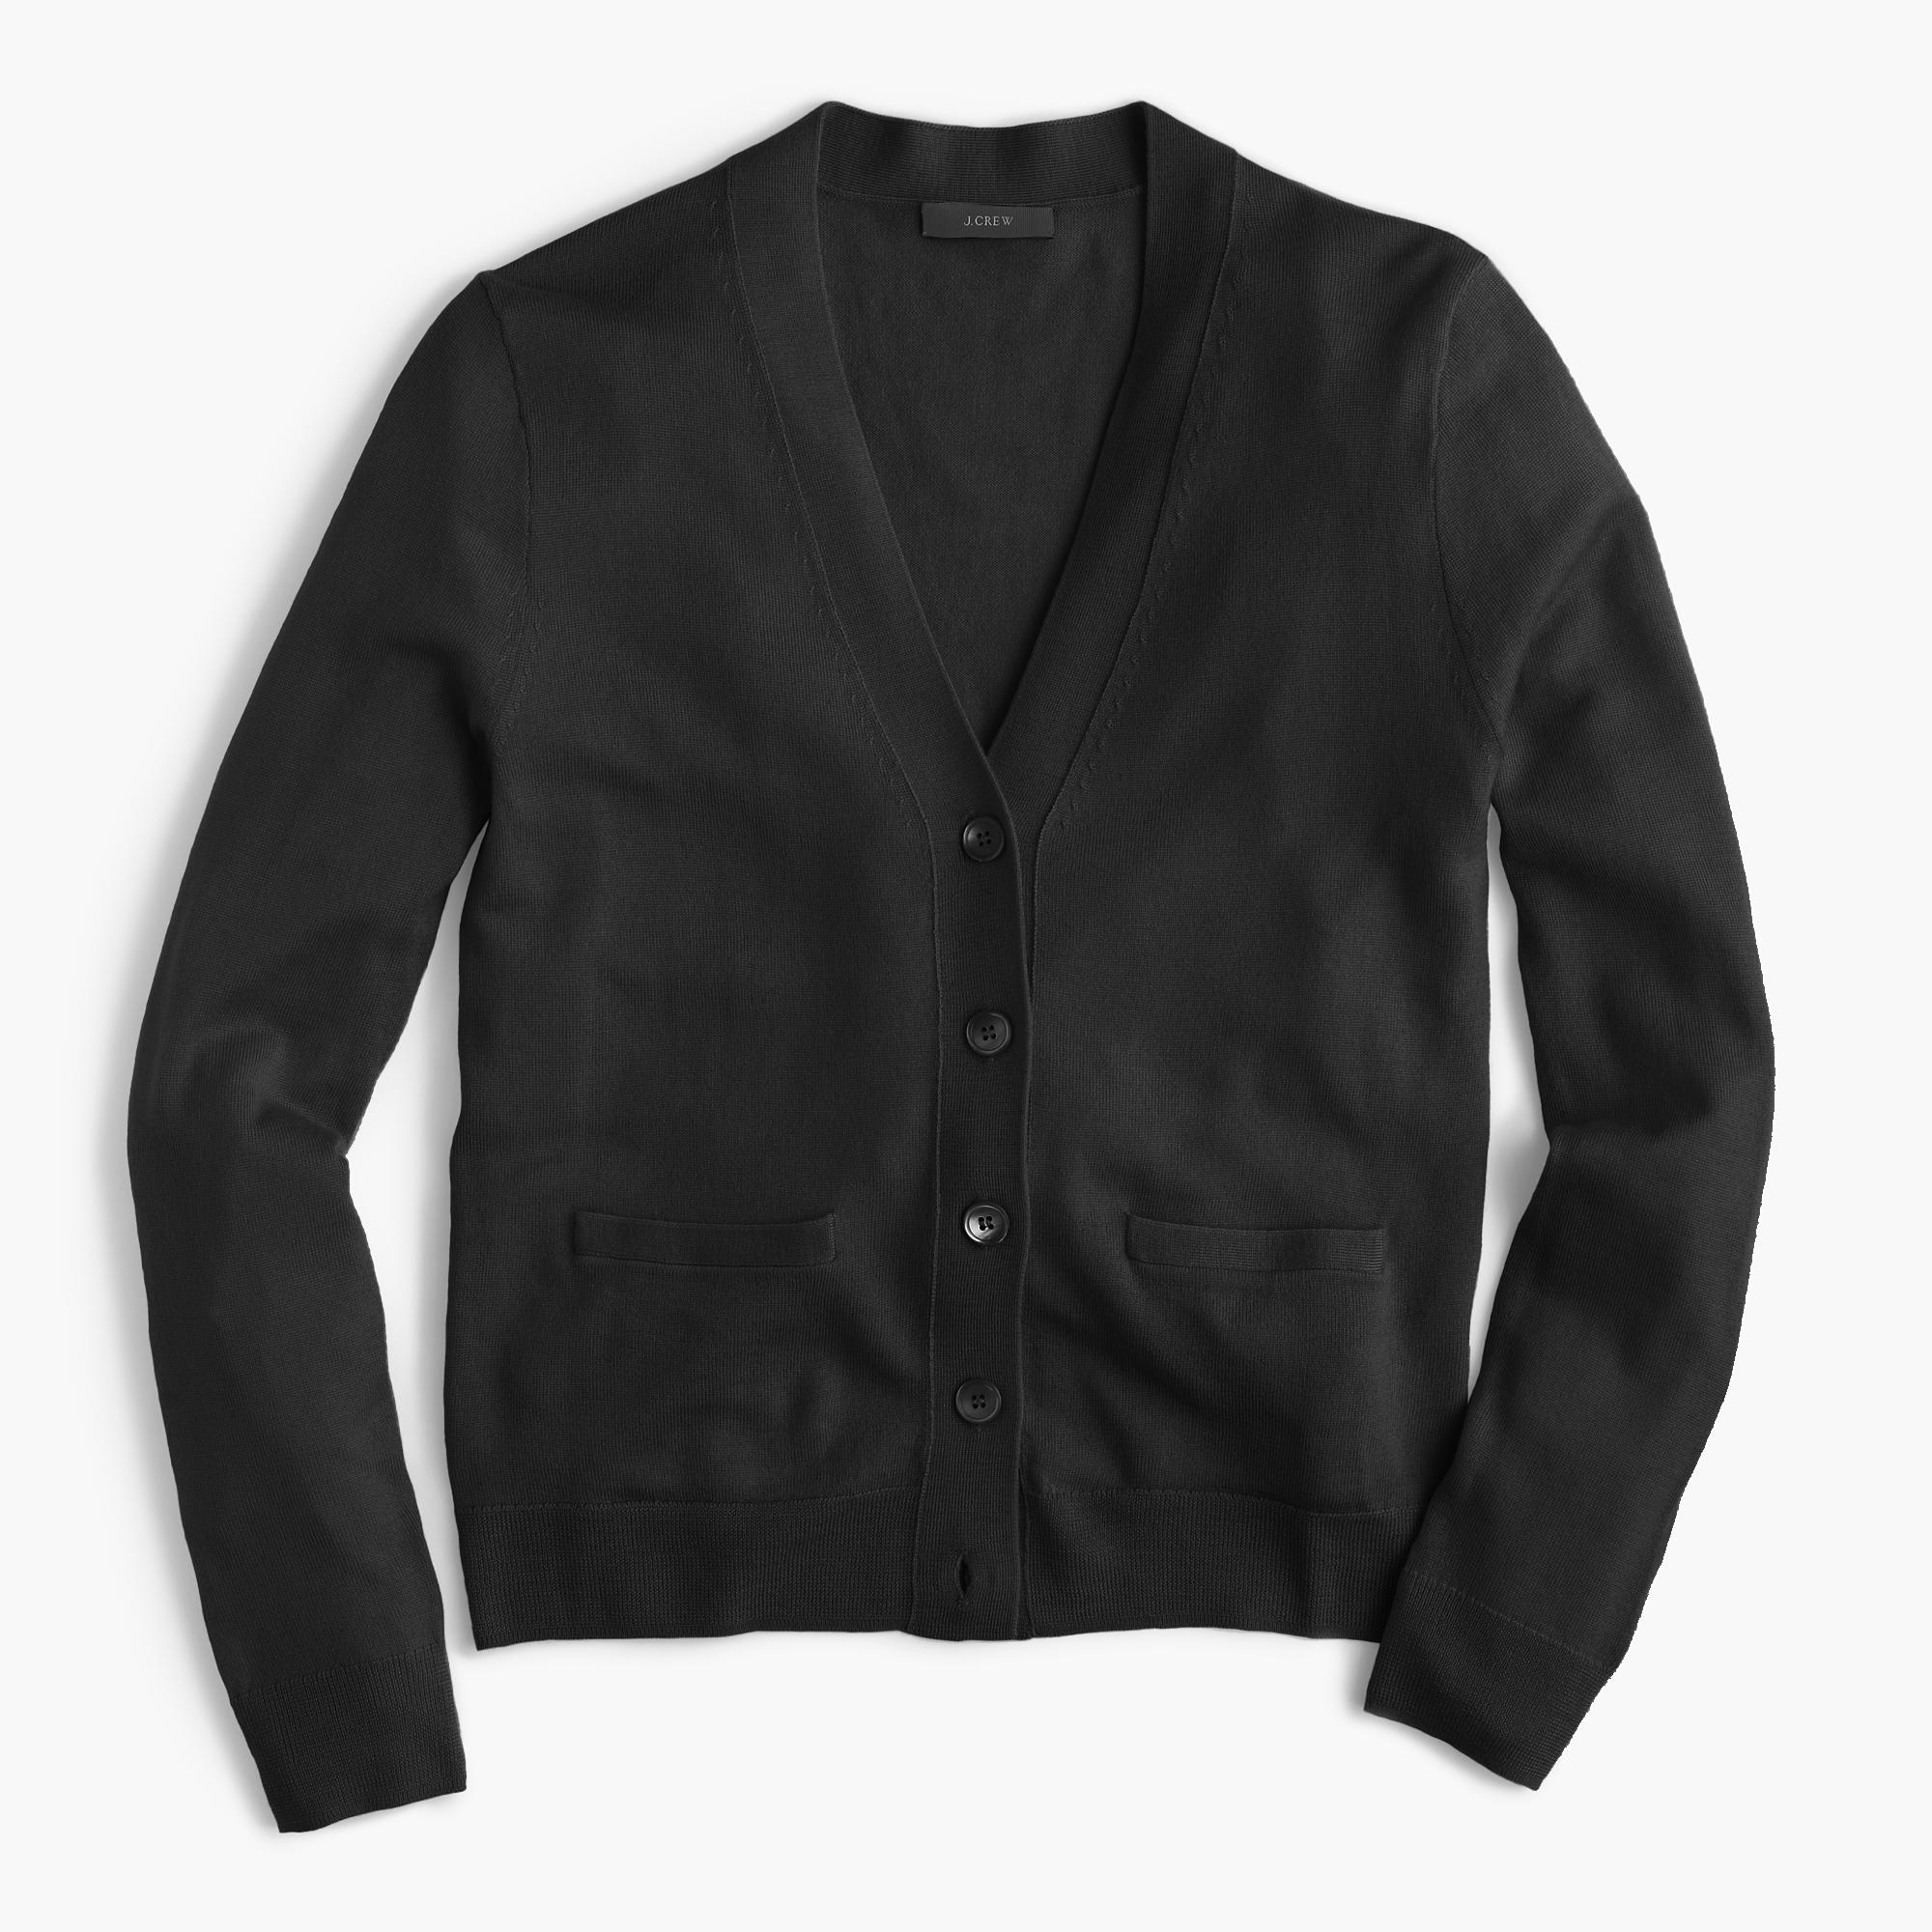 J.crew V-neck Cardigan Sweater In Merino Wool in Black | Lyst